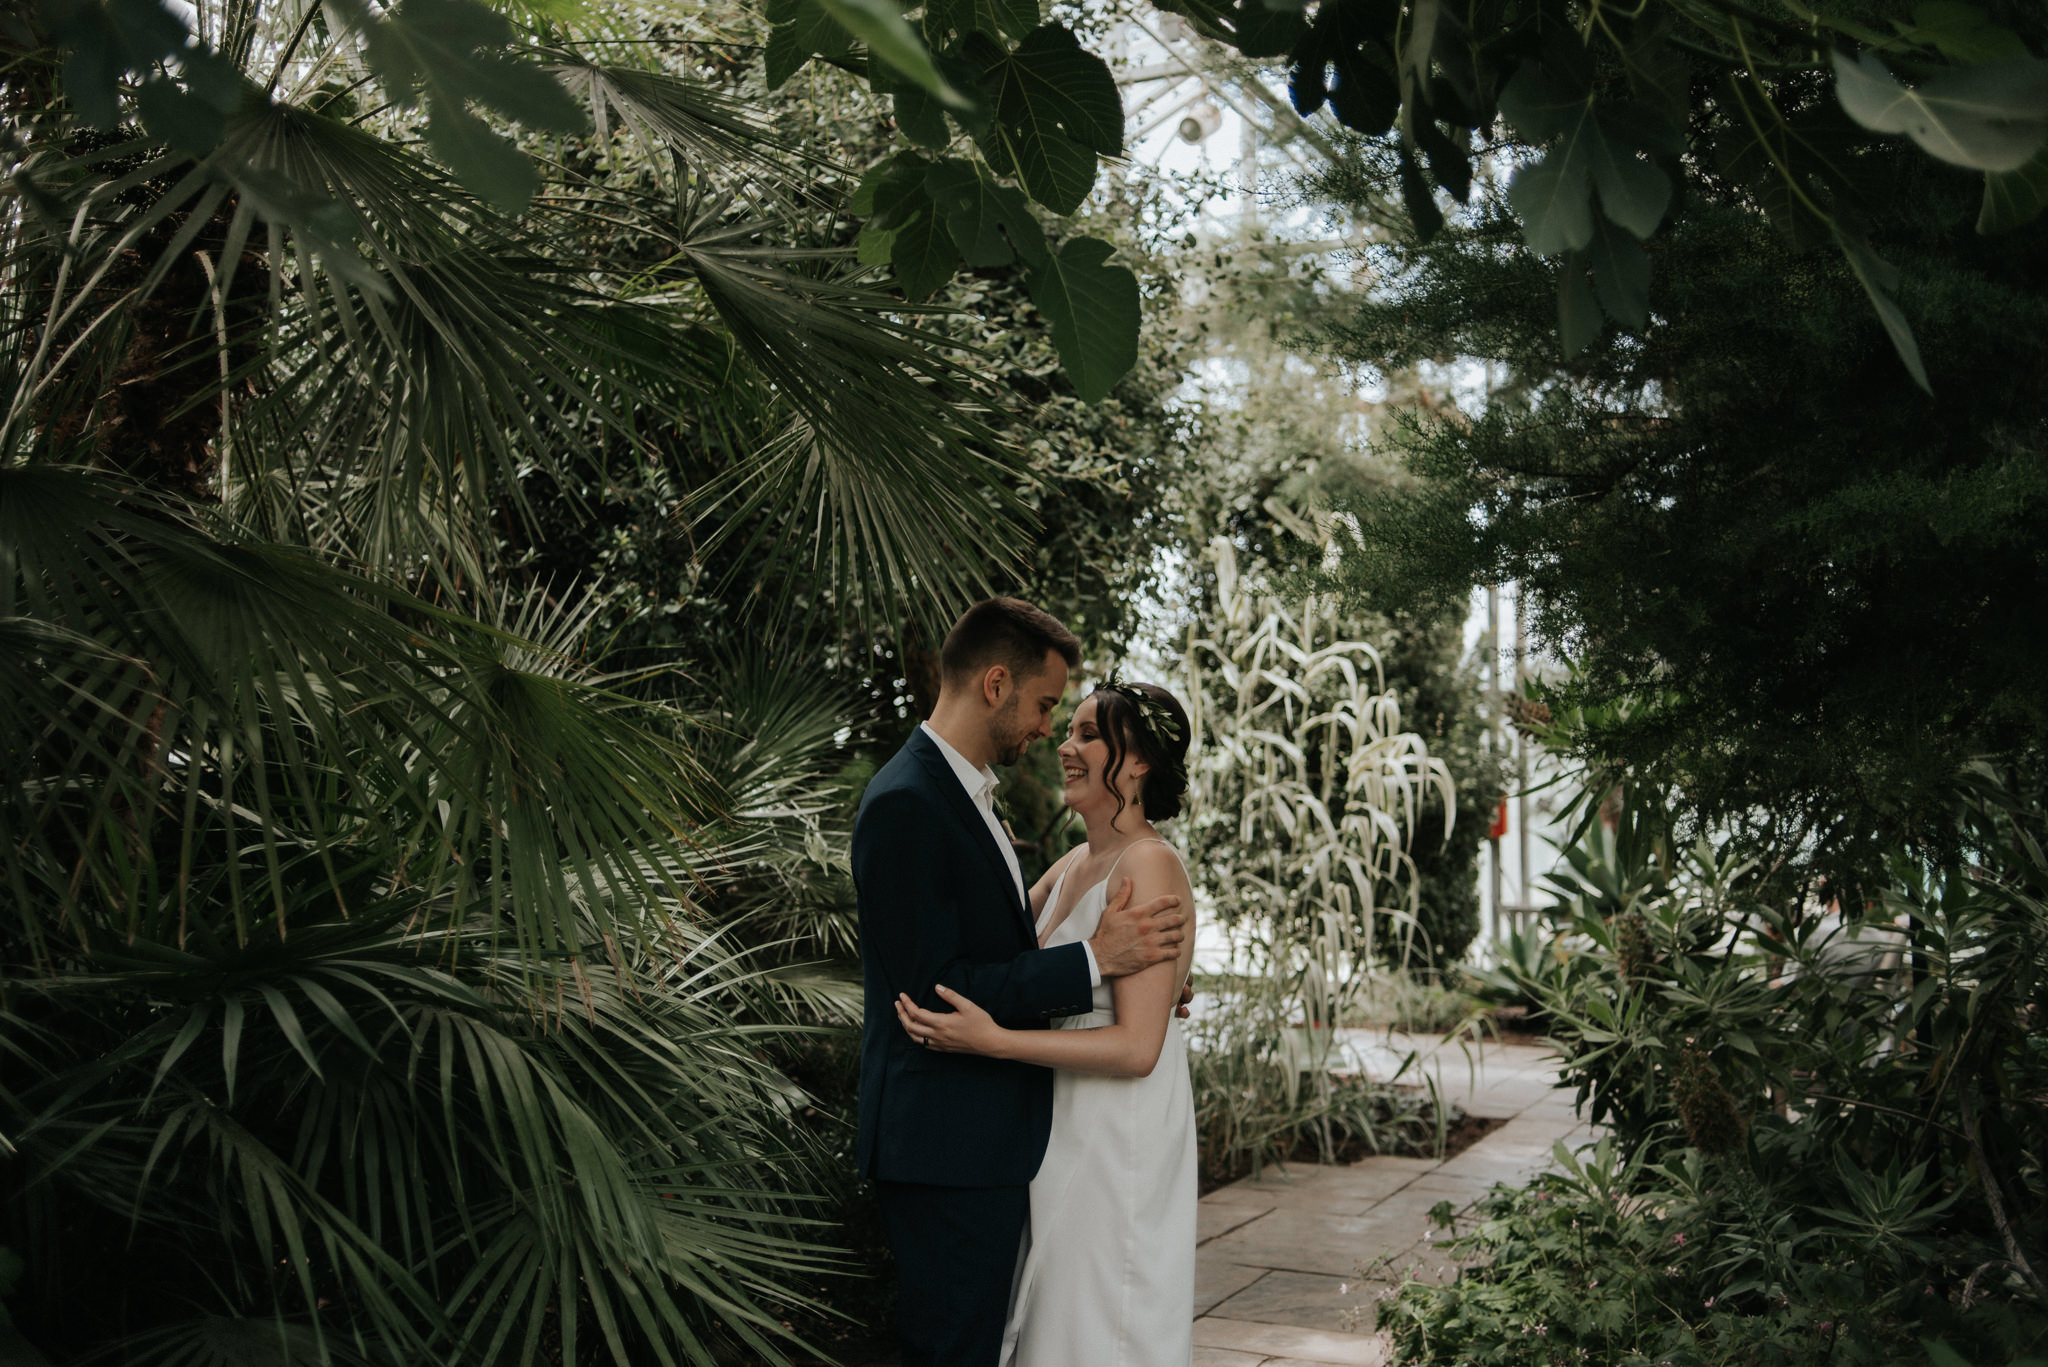 Royal Botanical Gardens Elopement